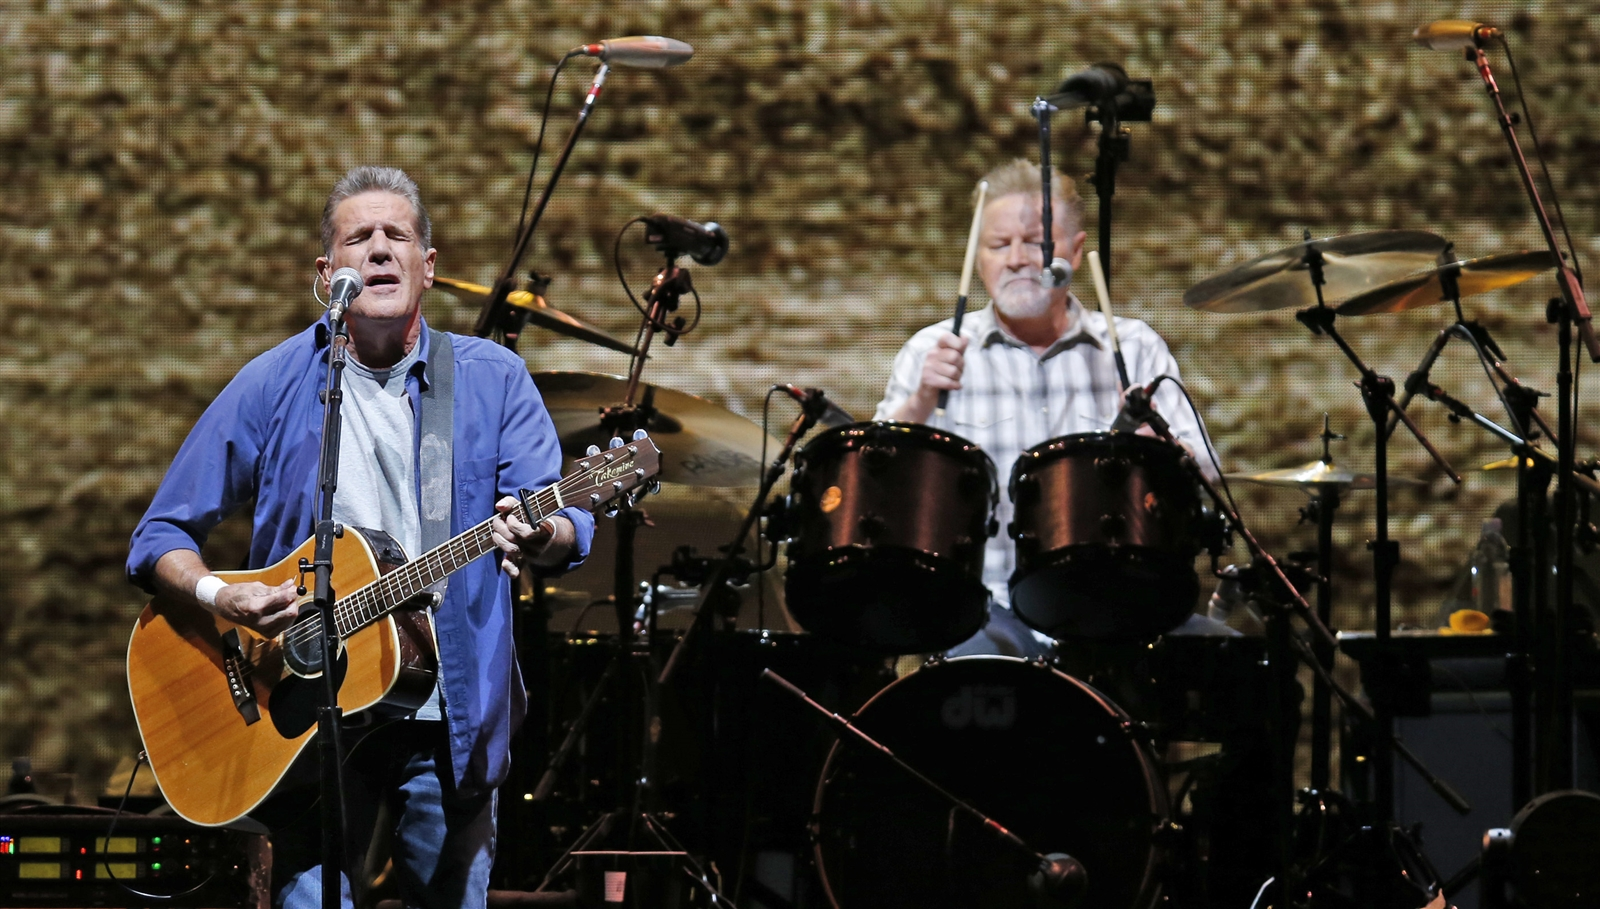 The Eagles, featuring Glenn Frey, left, and Don Henley, played a packed First Niagara Center on July 18, 2015. (Harry Scull Jr. / Buffalo News)